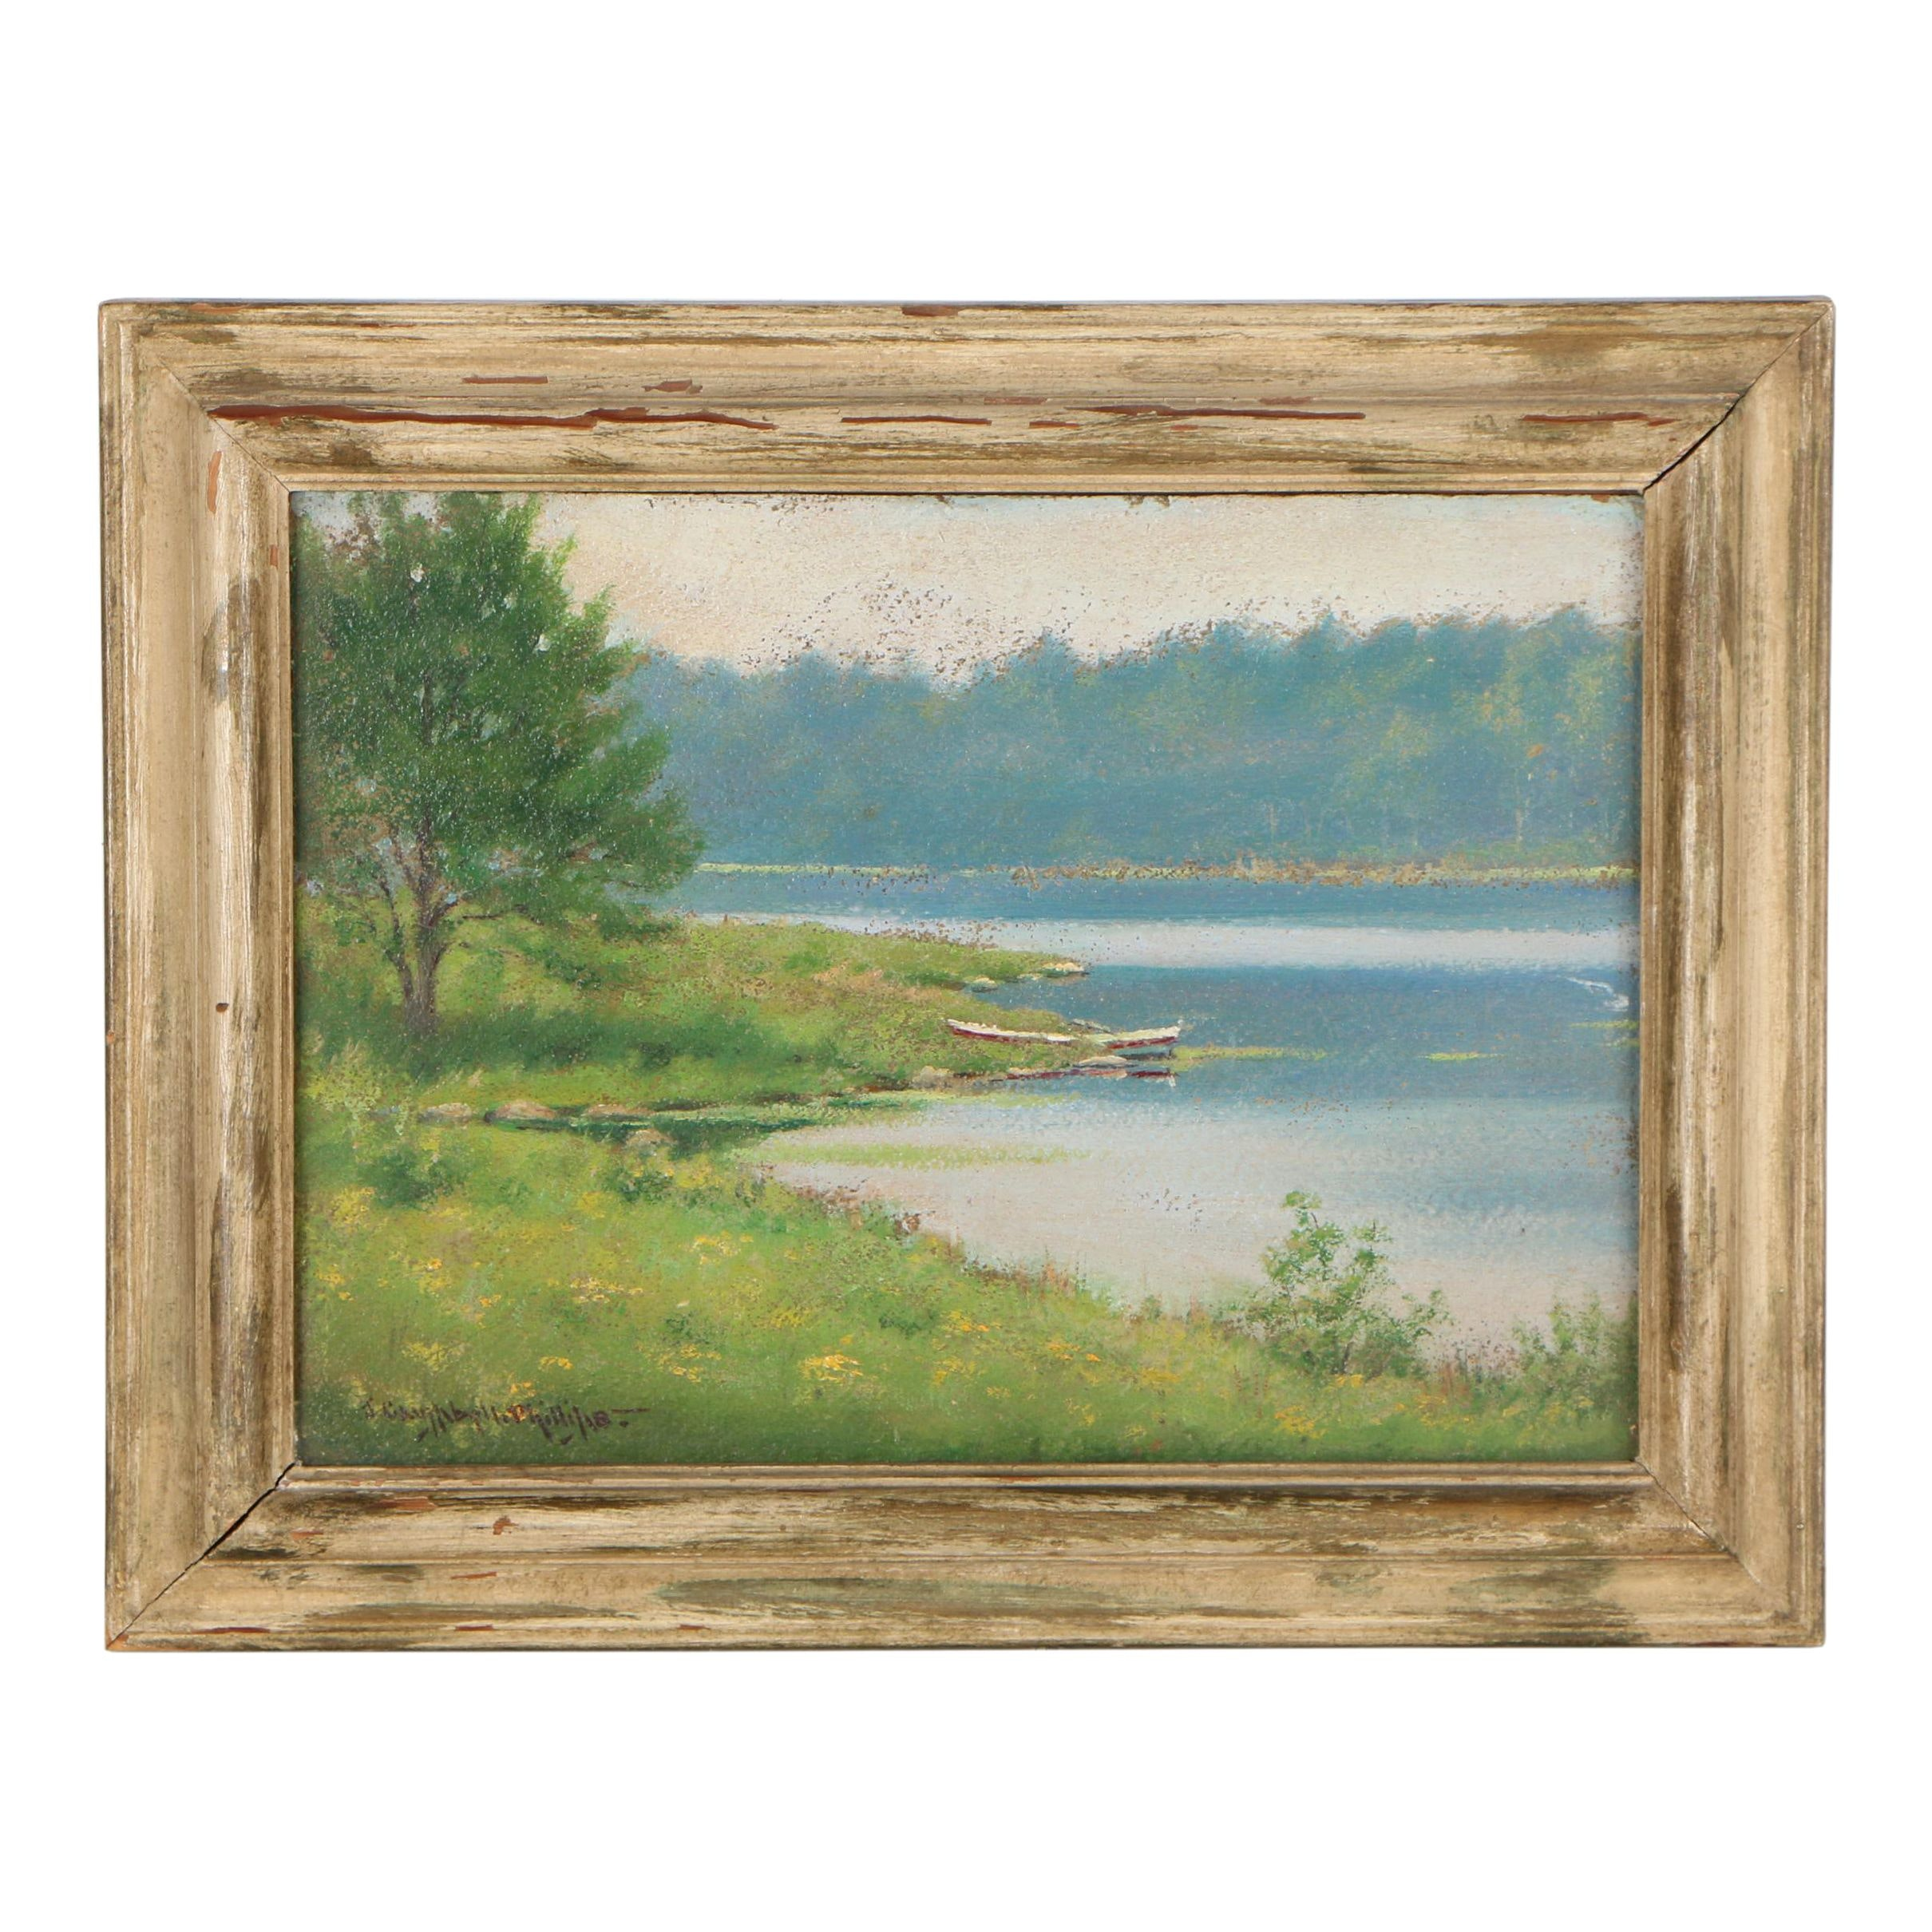 J. Campbell Phillips Landscape Oil Painting, Early 20th Century